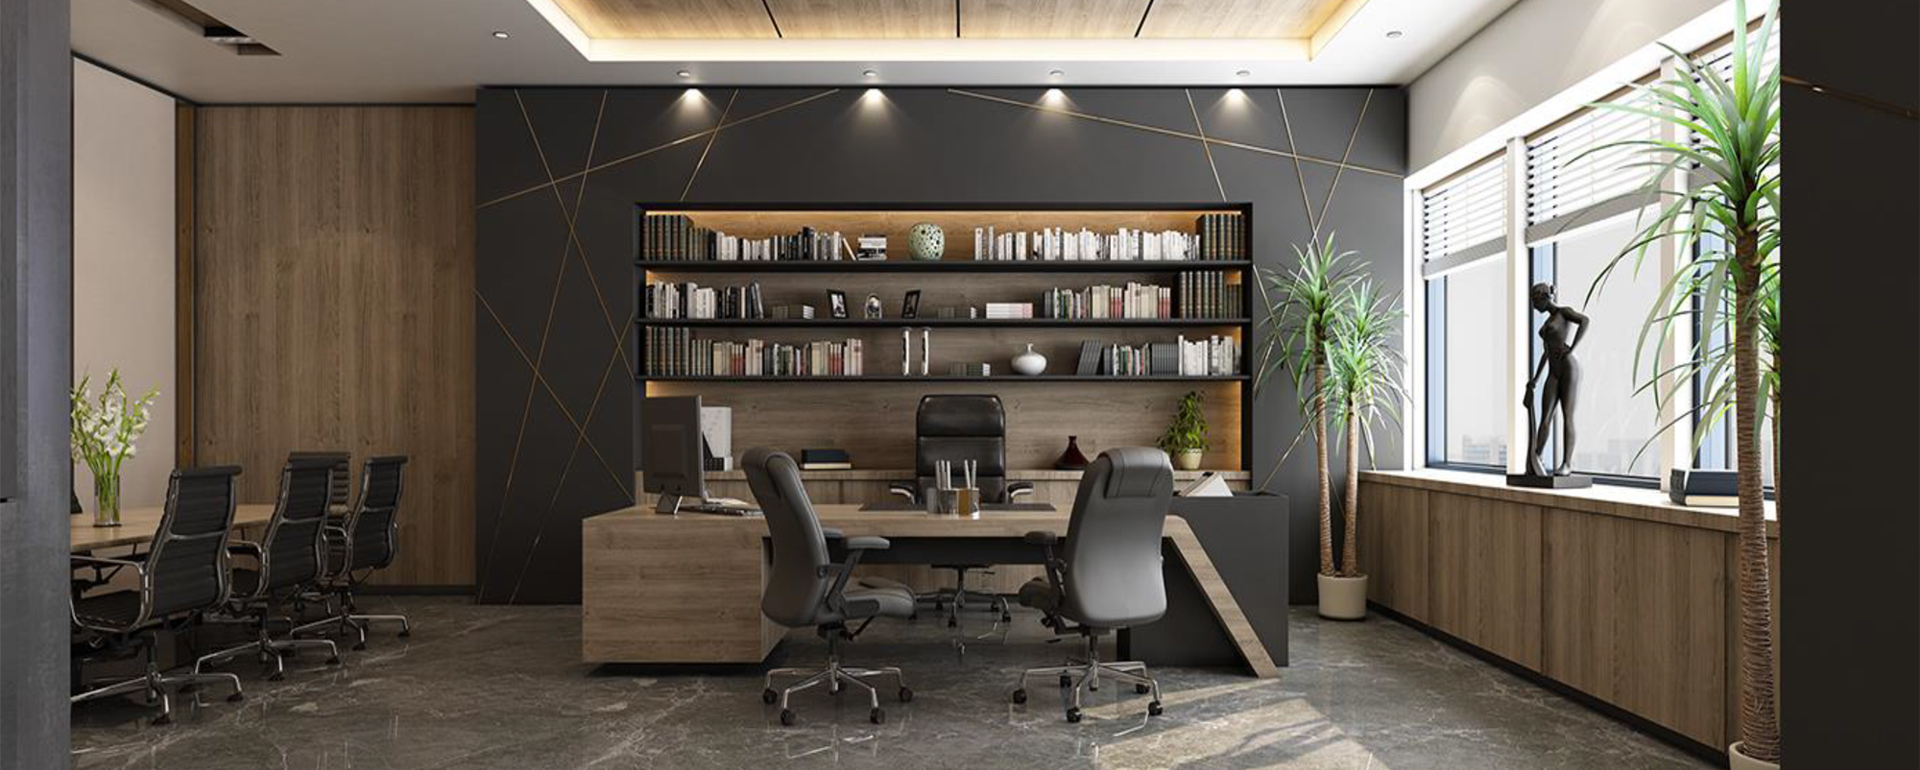 fitout business consultancy